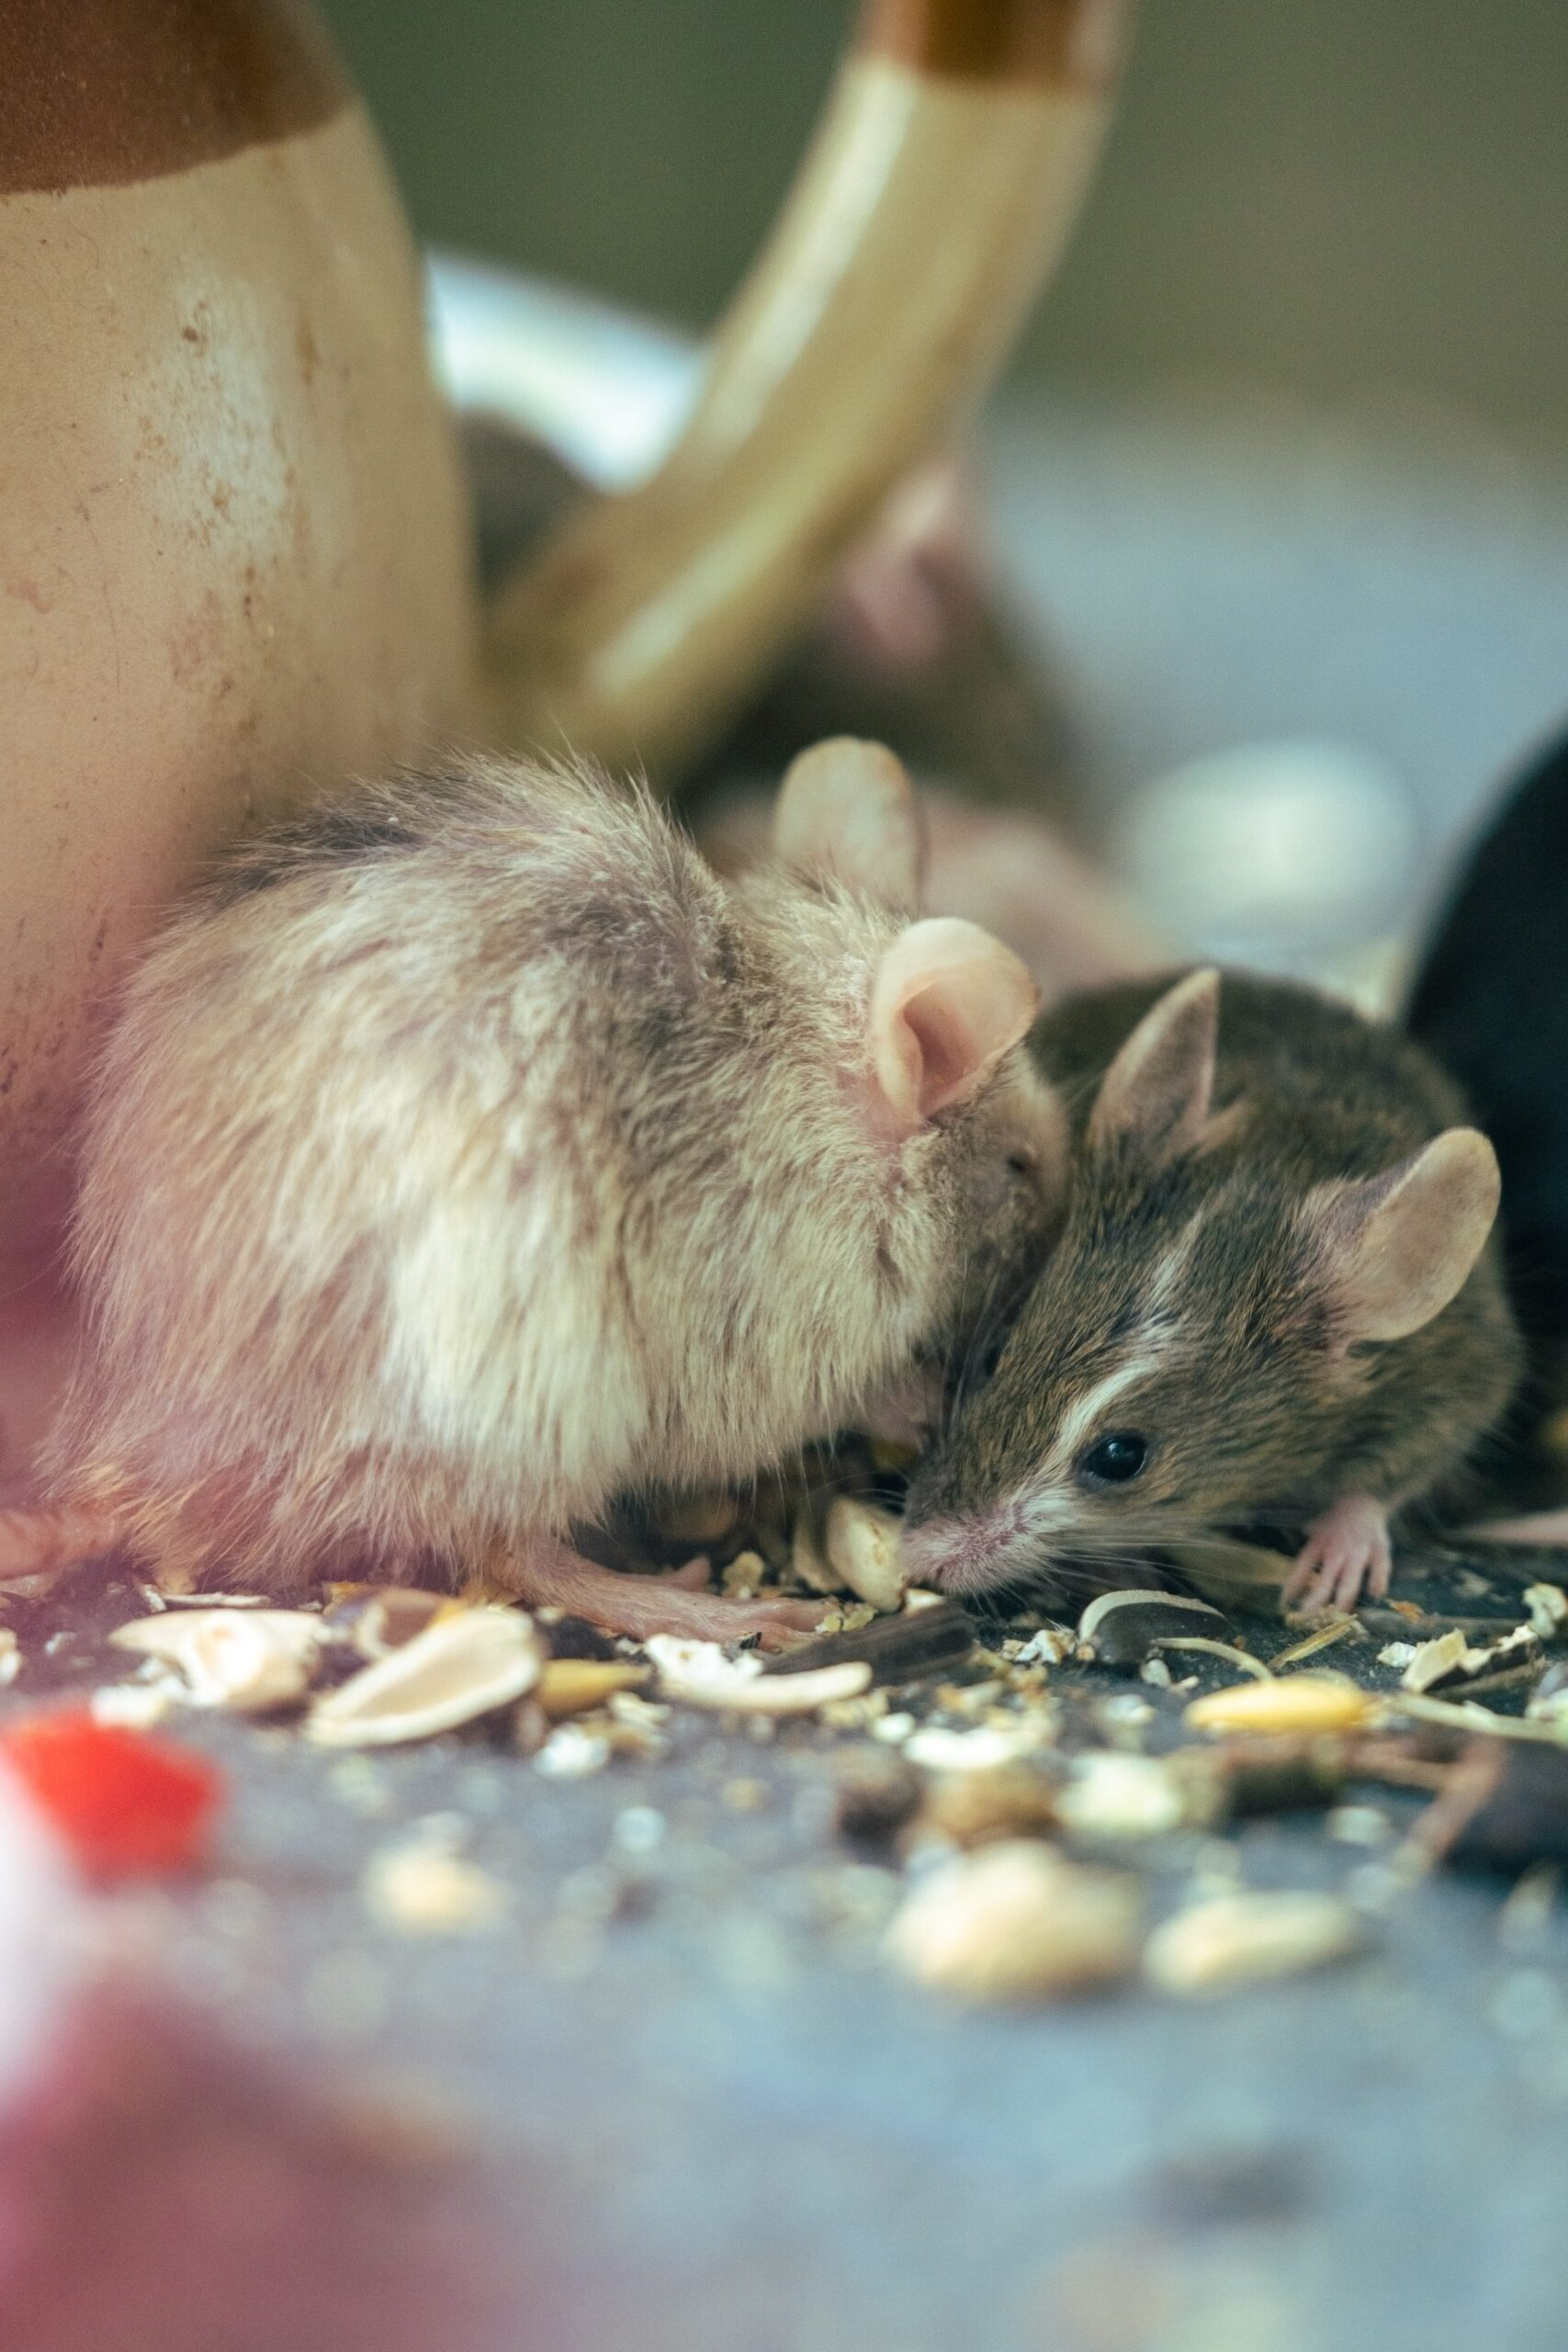 Rat Fever Cases in Sri Lanka Reach 10-Year High